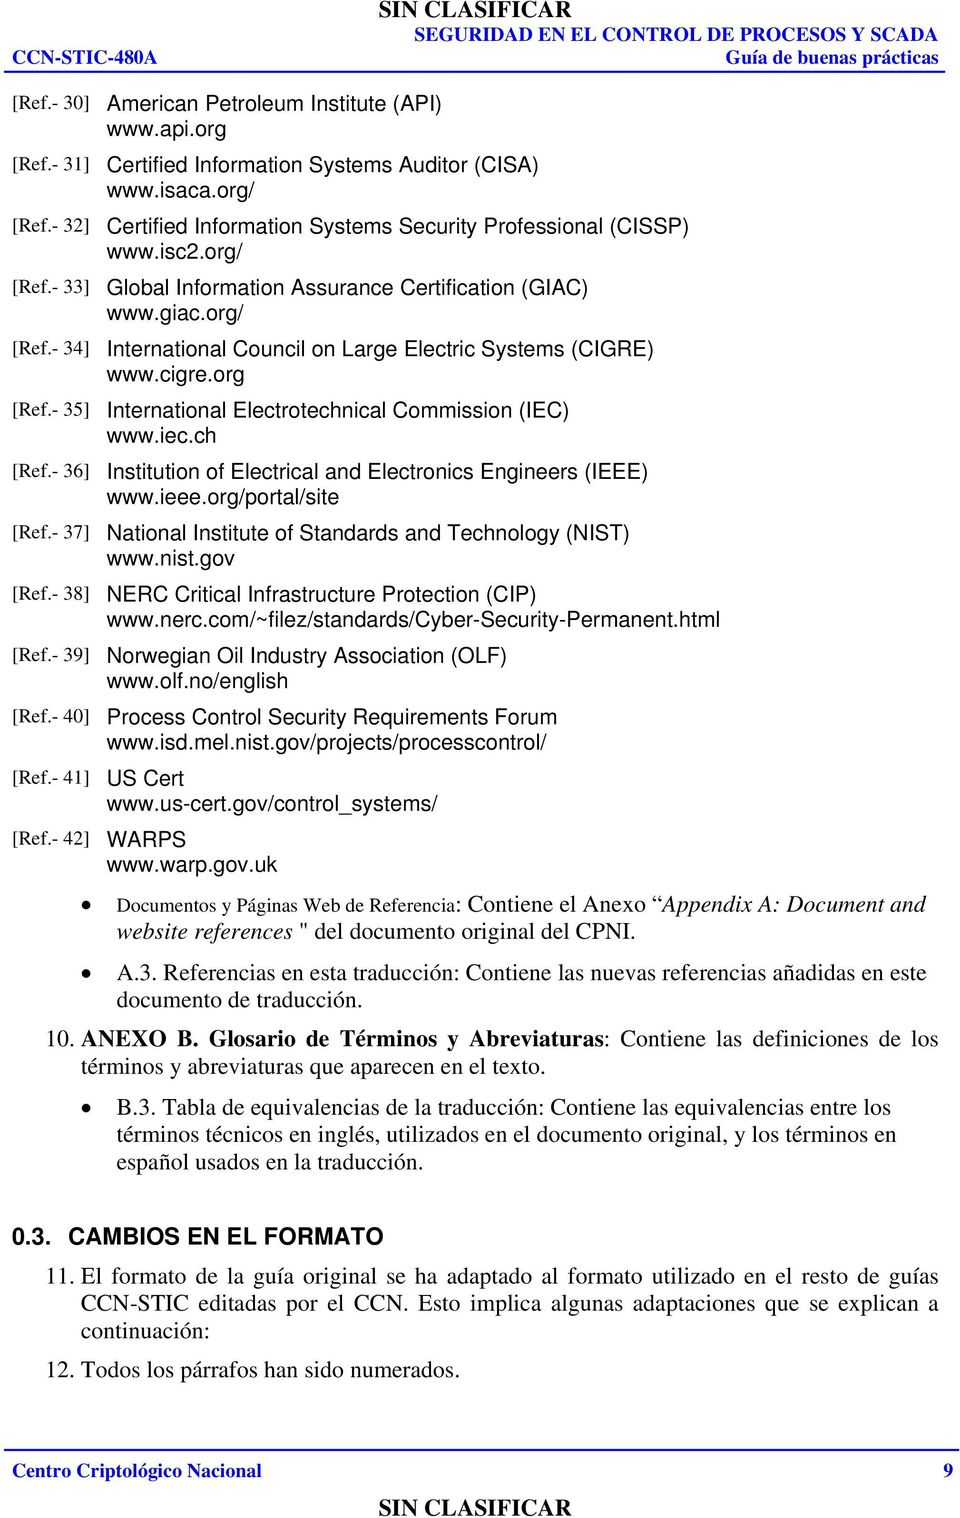 cigre.org [Ref.- 35] International Electrotechnical Commission (IEC) www.iec.ch [Ref.- 36] Institution of Electrical and Electronics Engineers (IEEE) www.ieee.org/portal/site [Ref.